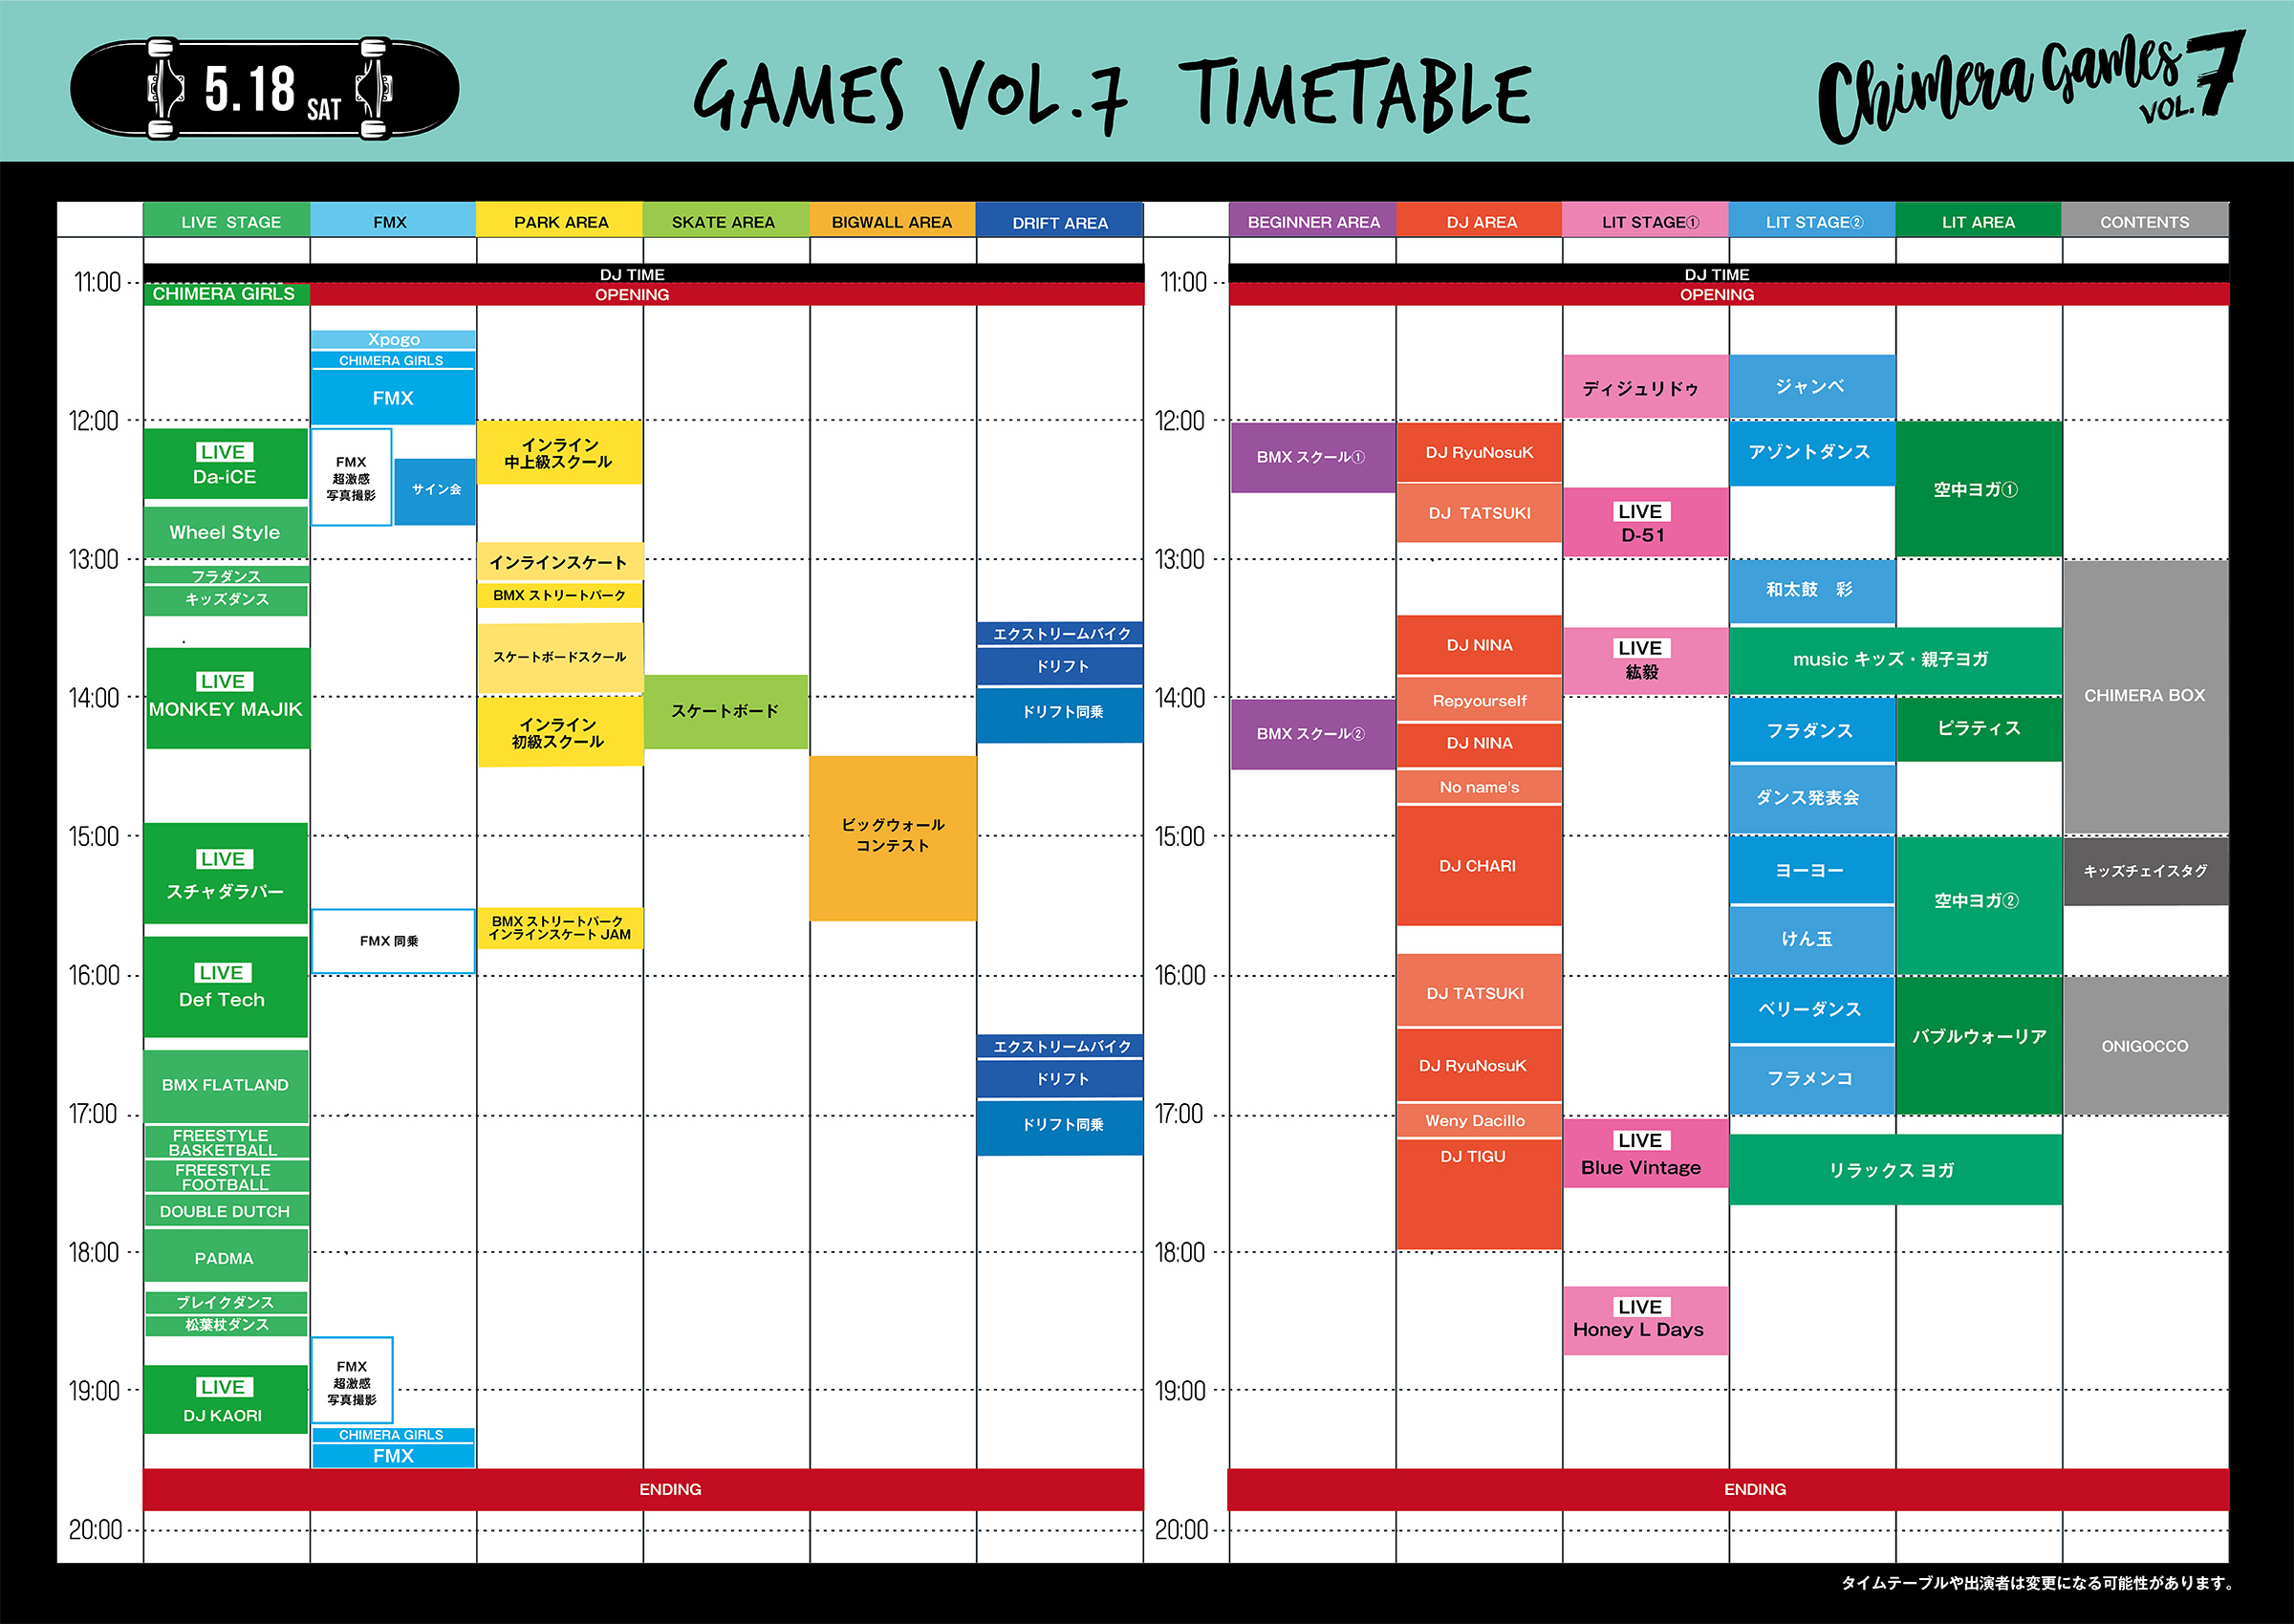 CHIMERA GAMES VOL.7:TIMETABLE:2019年5月18日(土)